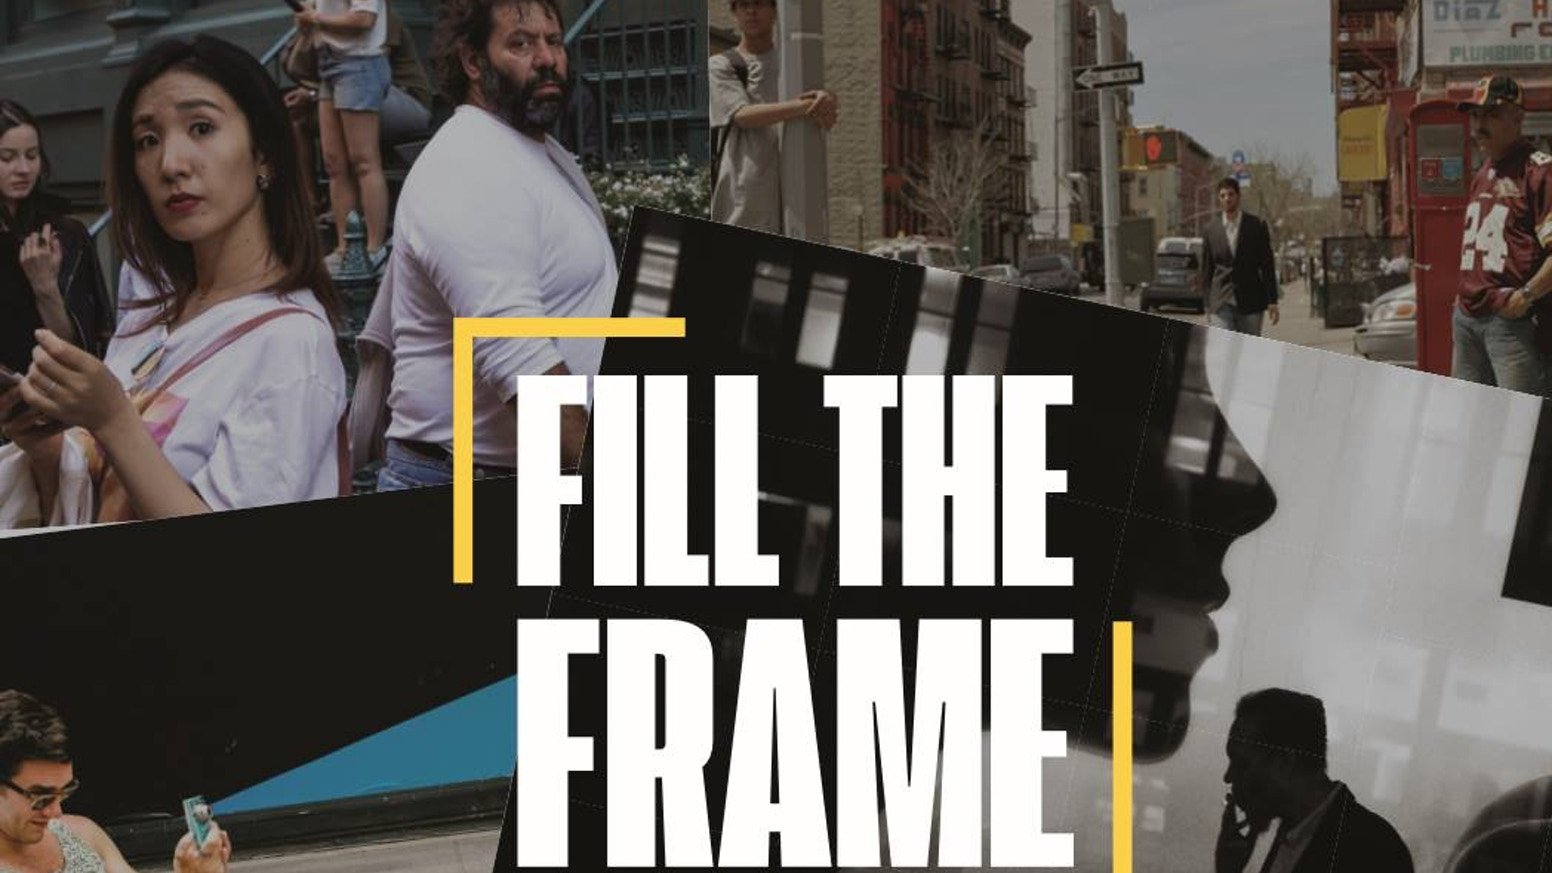 """Fill The Frame"", directed by Tim Huynh, follows eight contemporary New York street photographers and why the art inspires them"